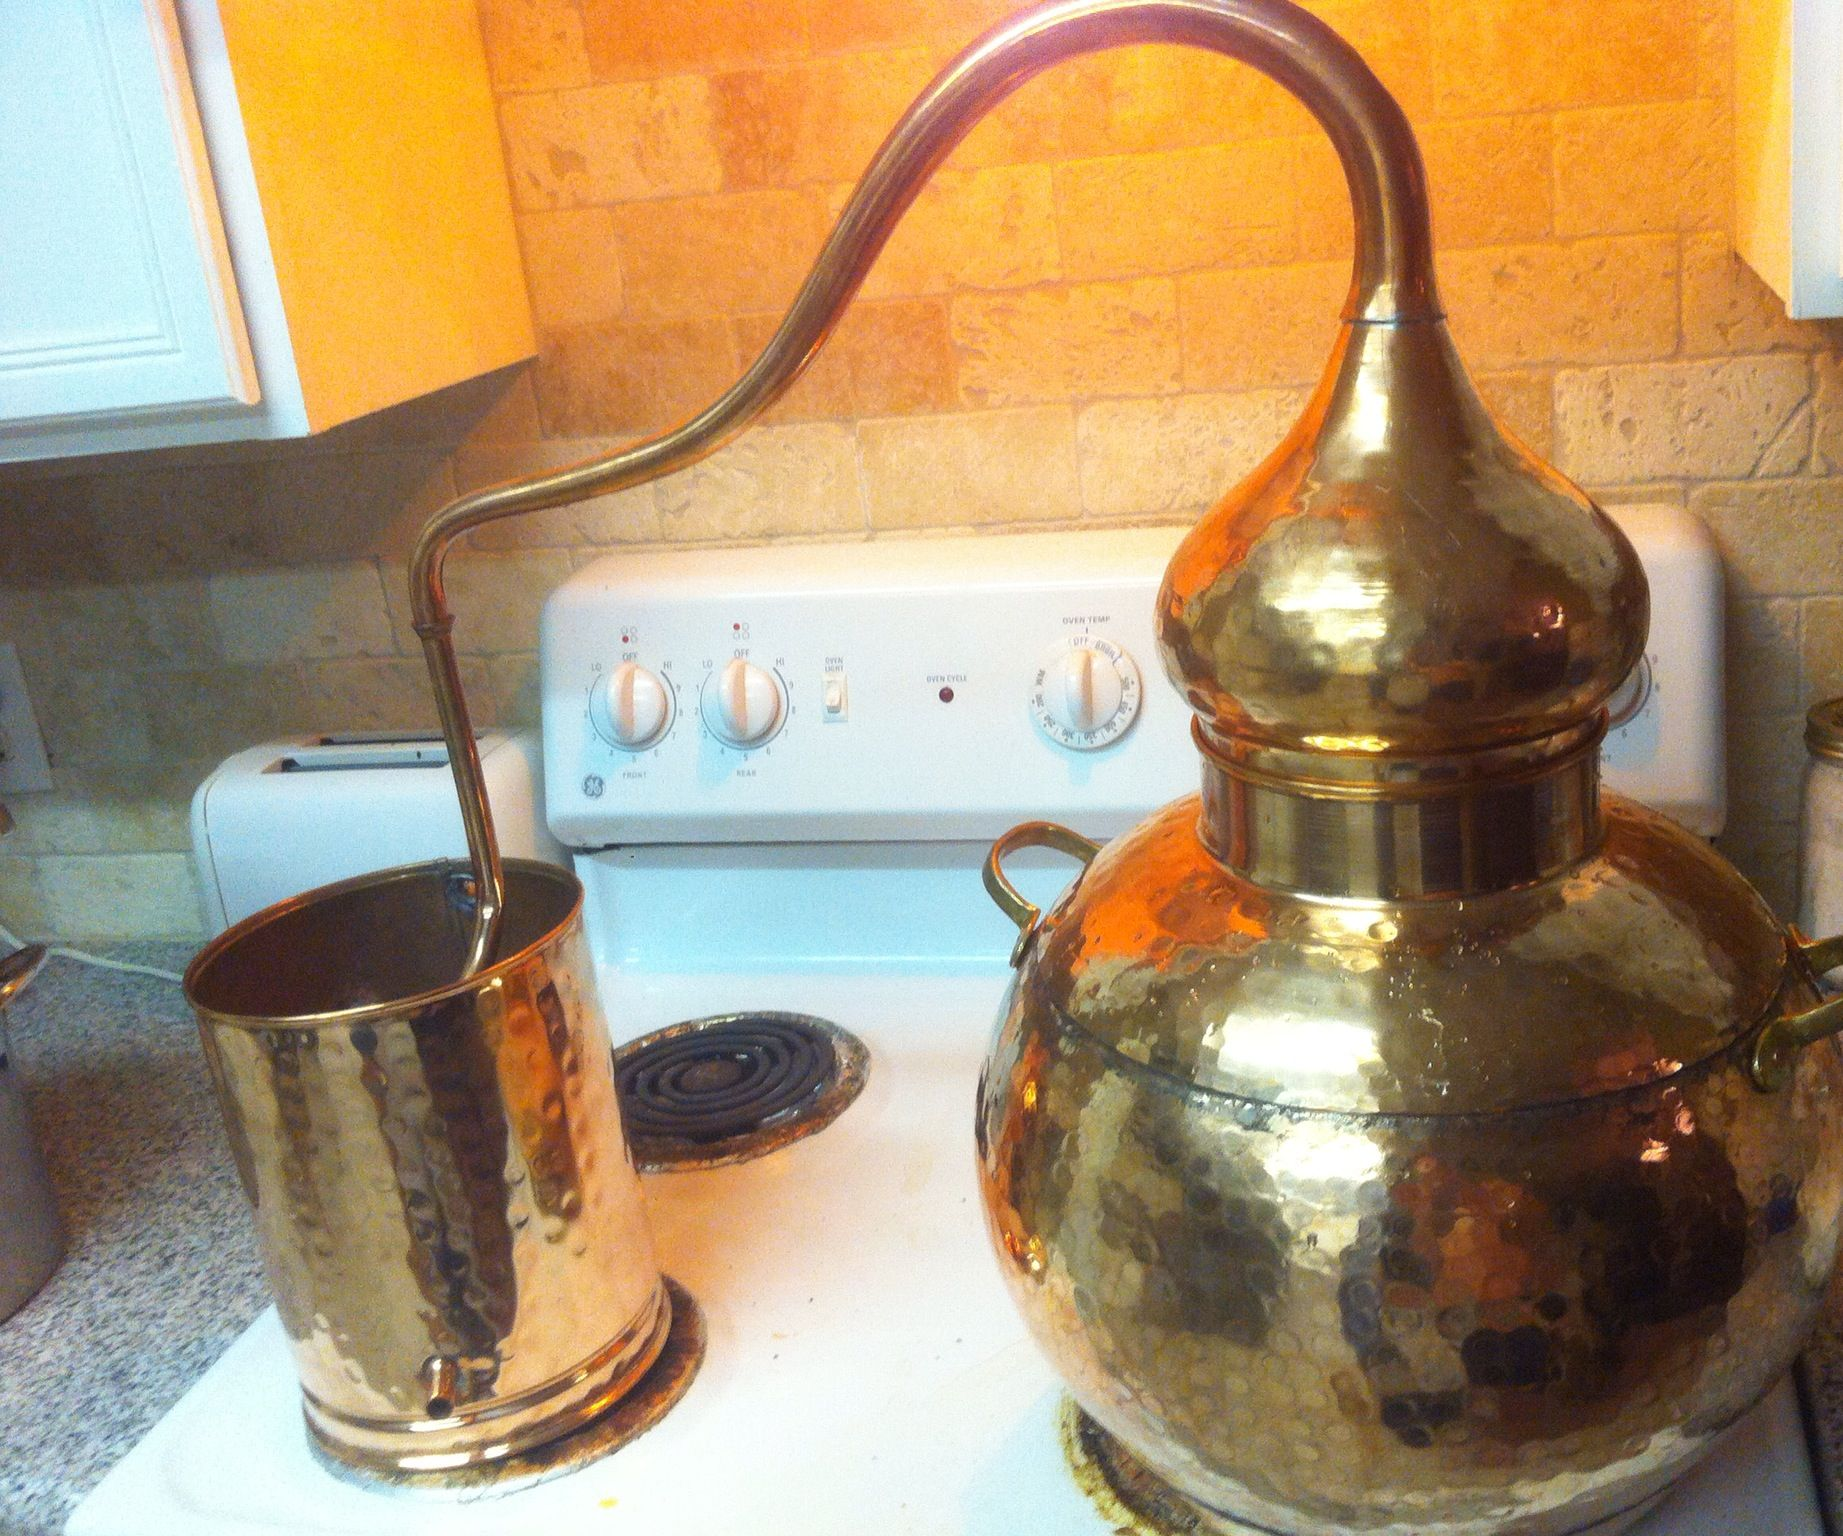 How to make moonshine at home from potatoes How to determine the willingness of the barge to distill